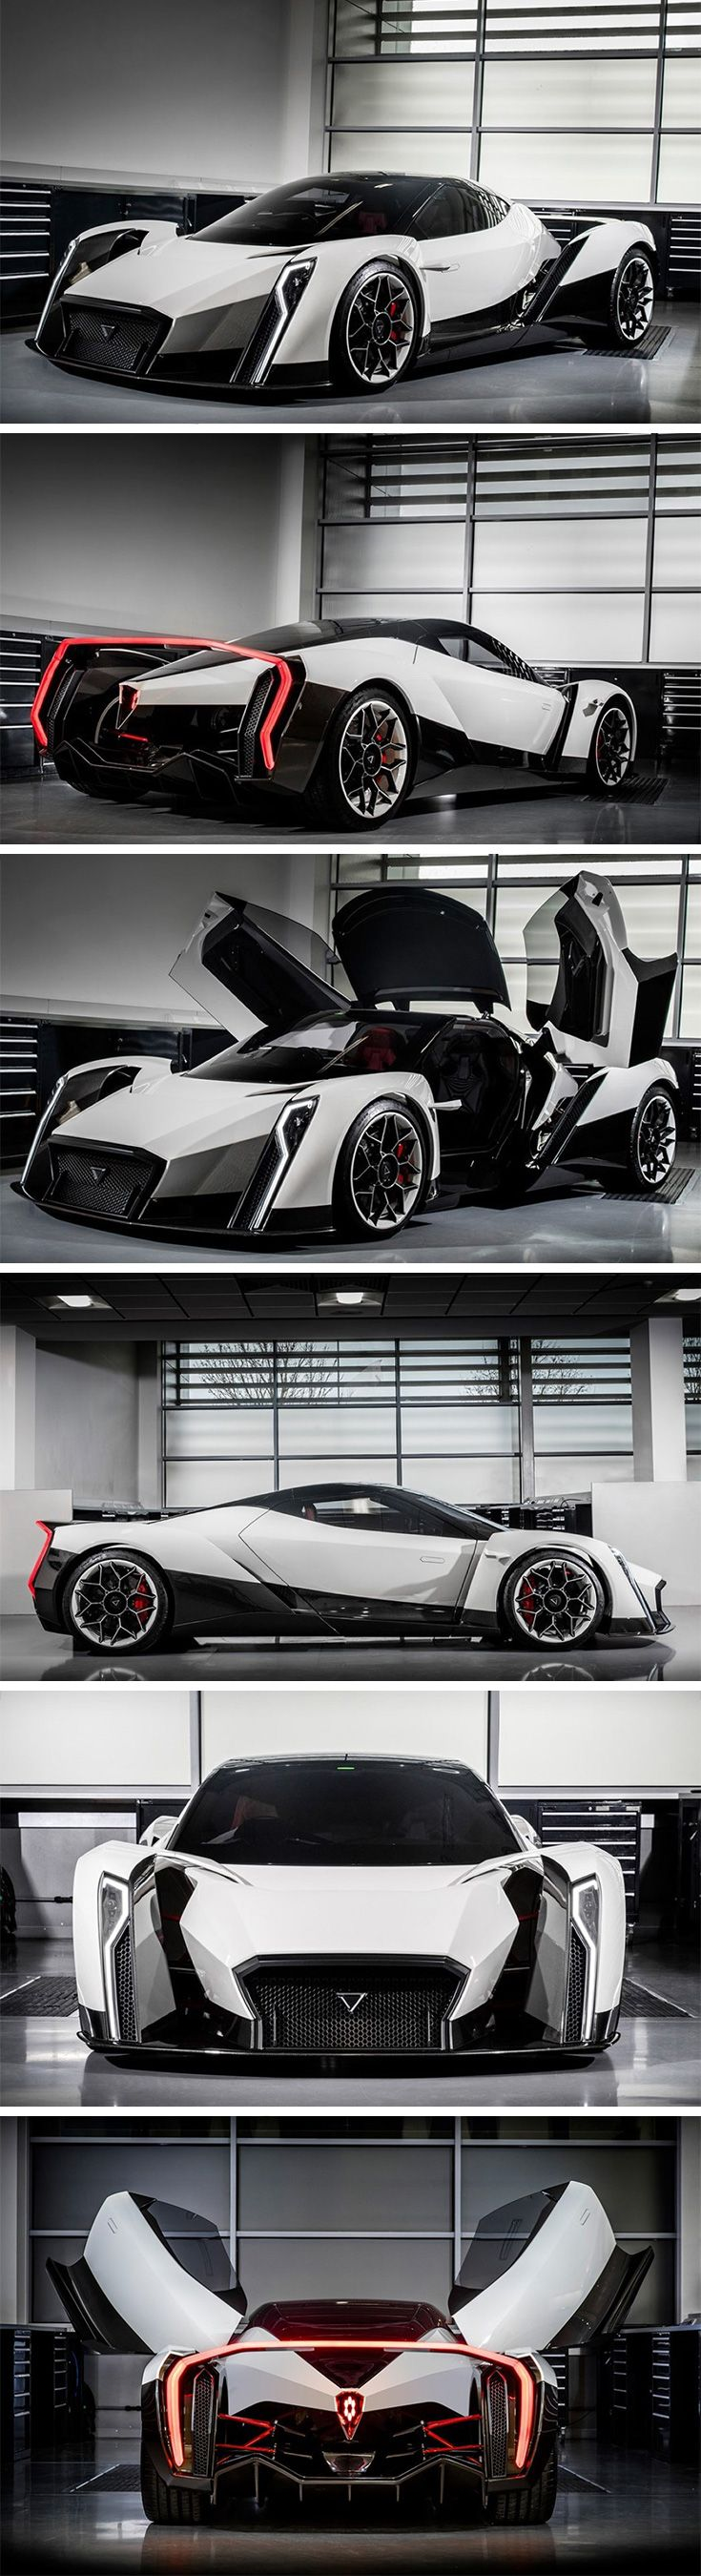 This Absolute Monster Of A Car By Singapore Based Vanda Electrics